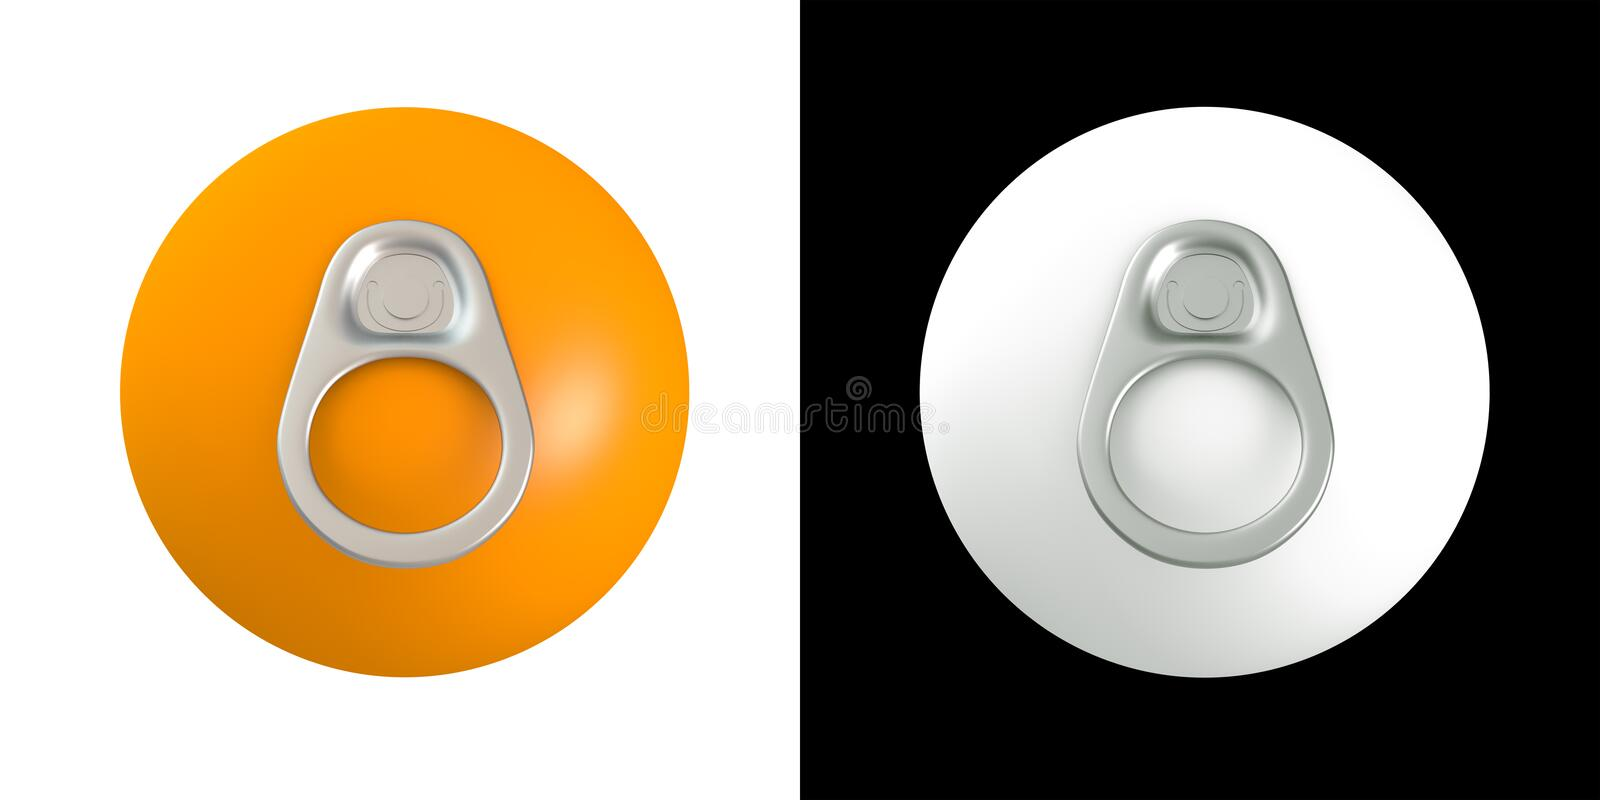 Download 3D Ring Pull Of Cans On Orange Fruit Stock Illustration - Image: 22952436